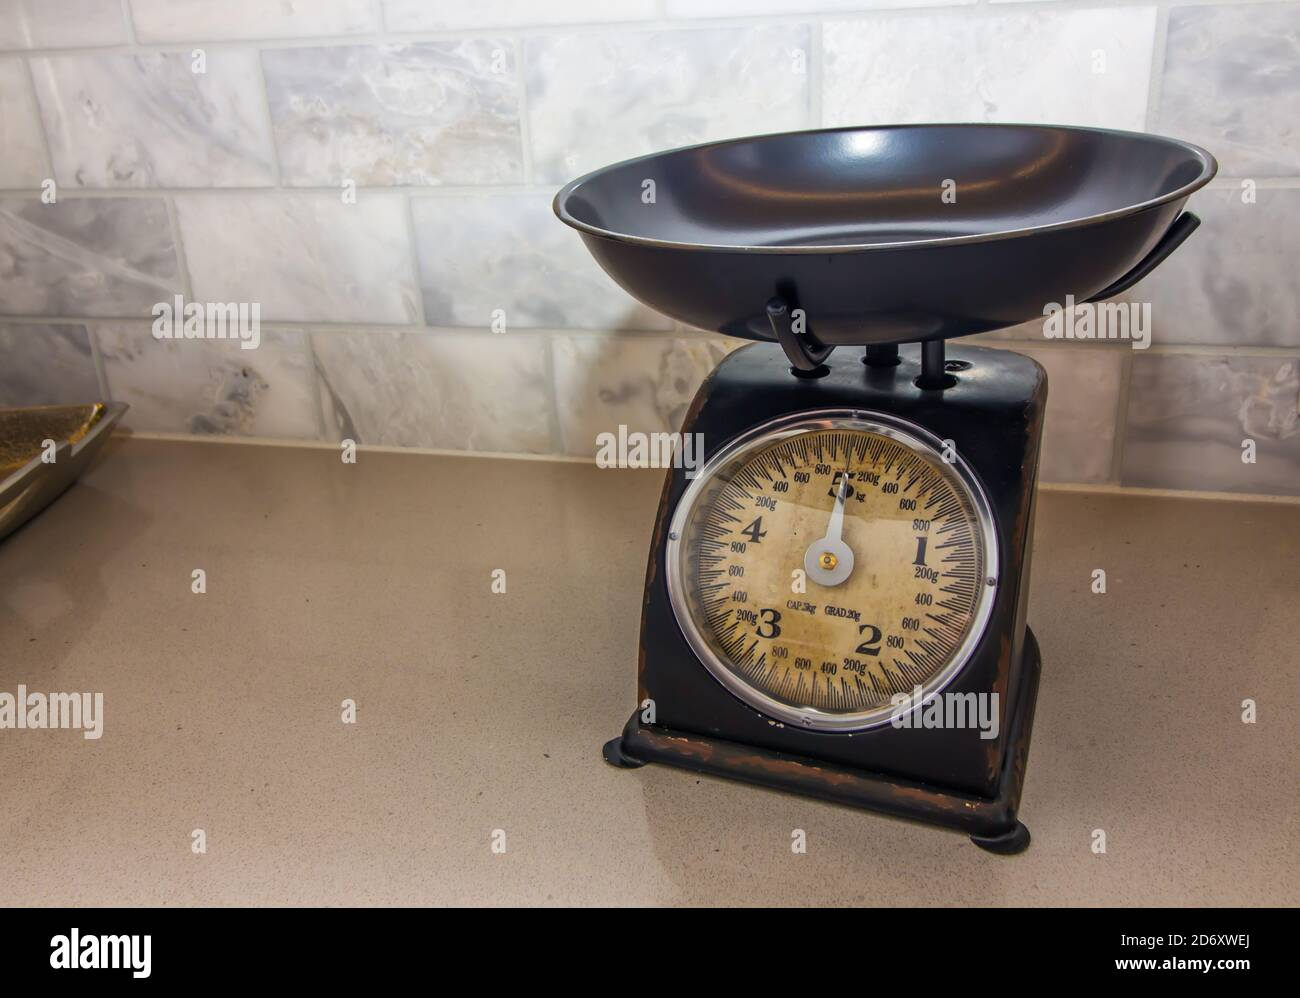 Vintage Kitchen Scale High Resolution Stock Photography And Images Alamy